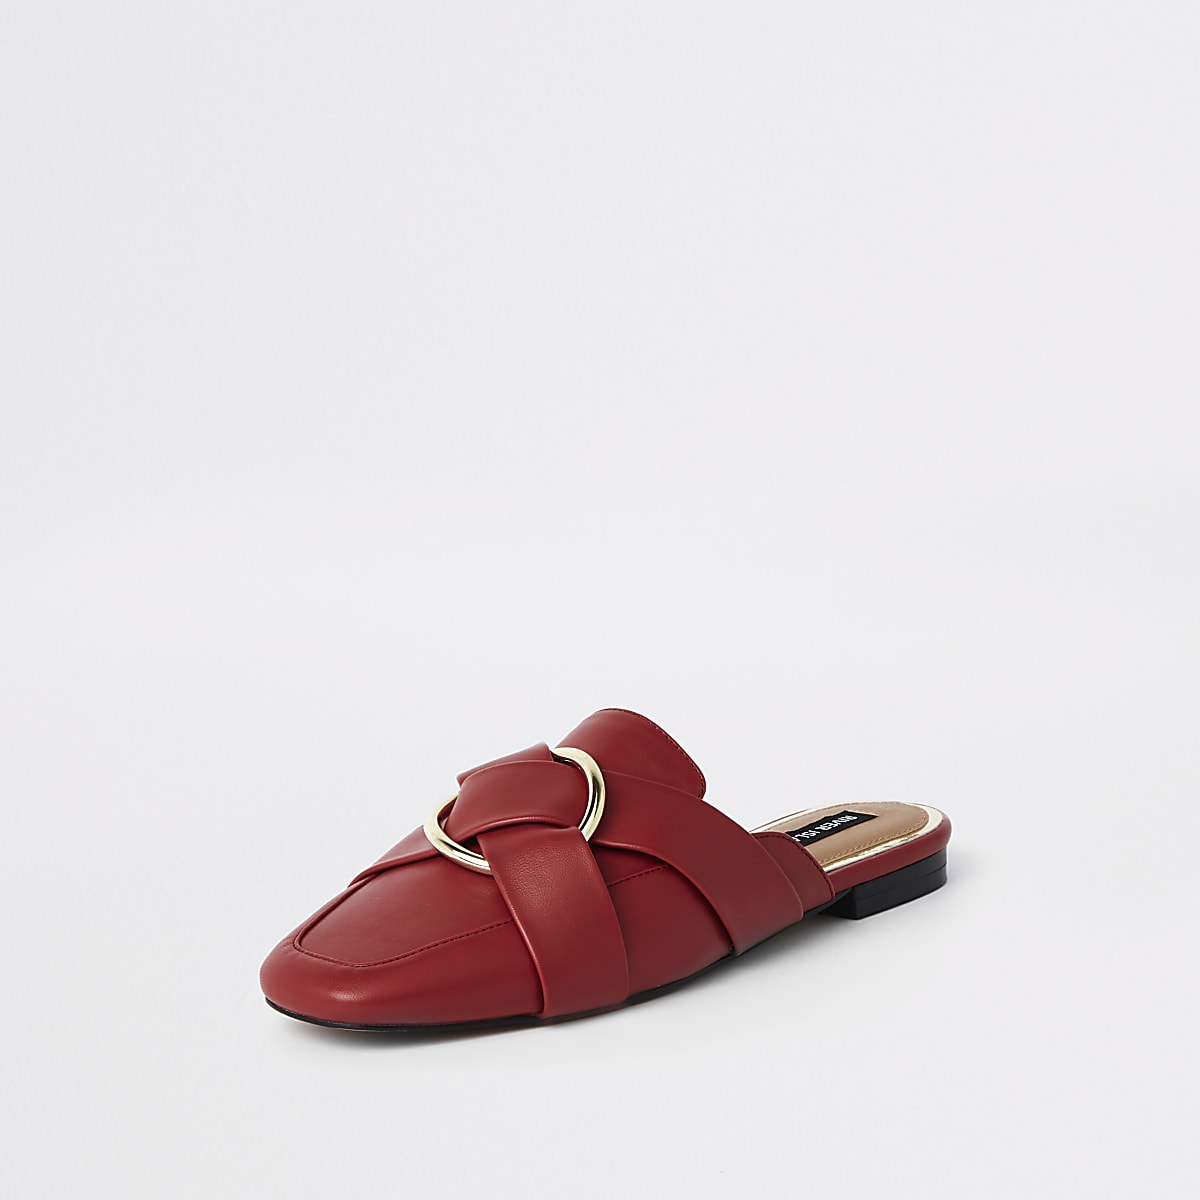 Backless Women Loafers Boots Shoesamp; Red Ring bYf76vgy